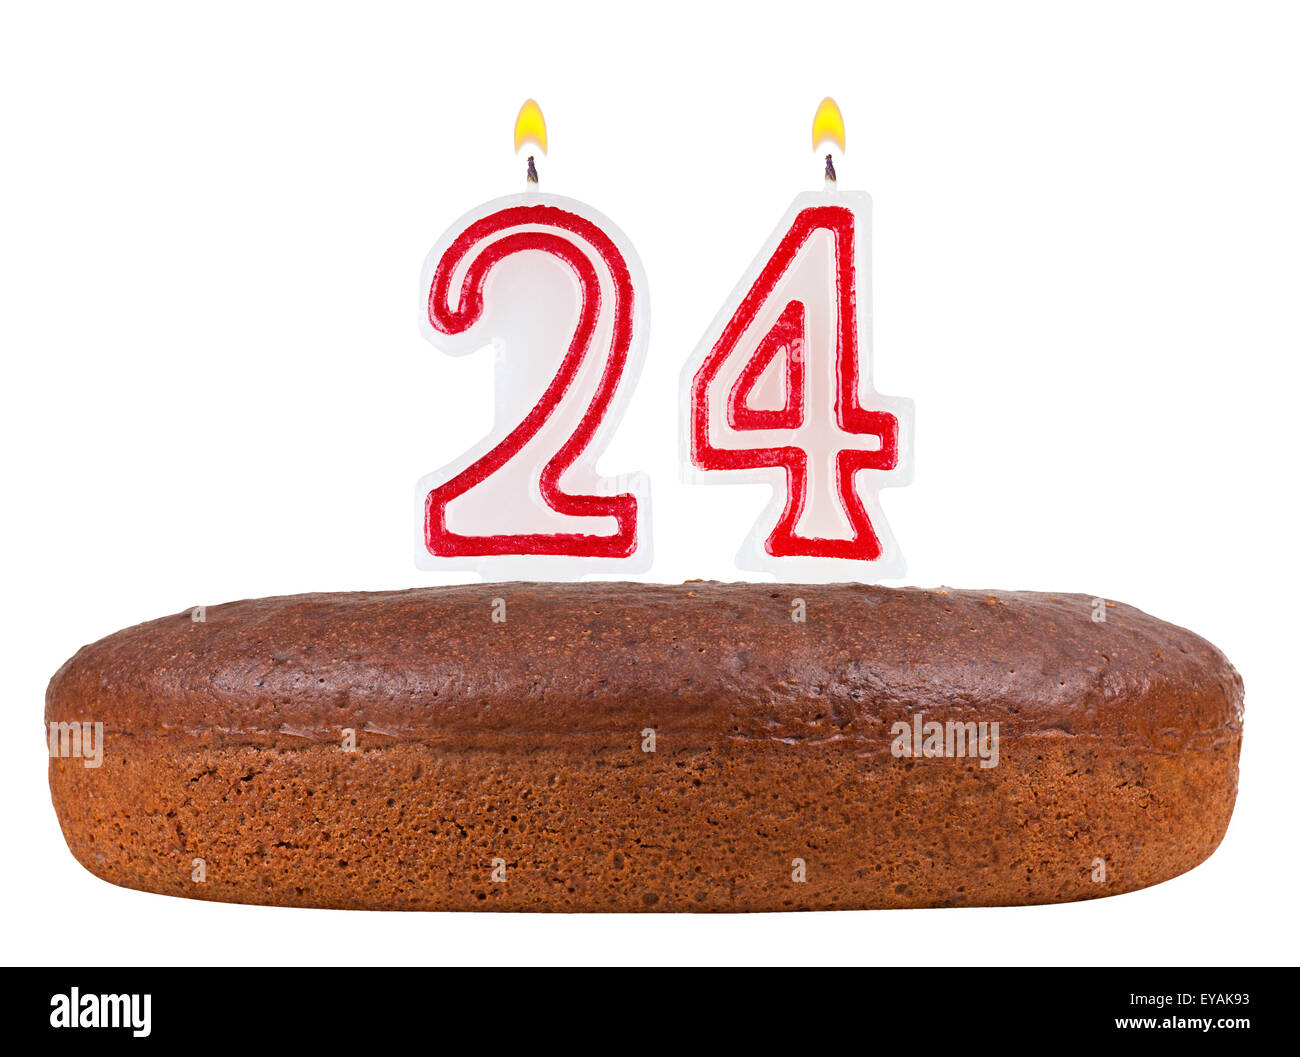 Birthday Cake With Candles Number 24 Isolated On White Background